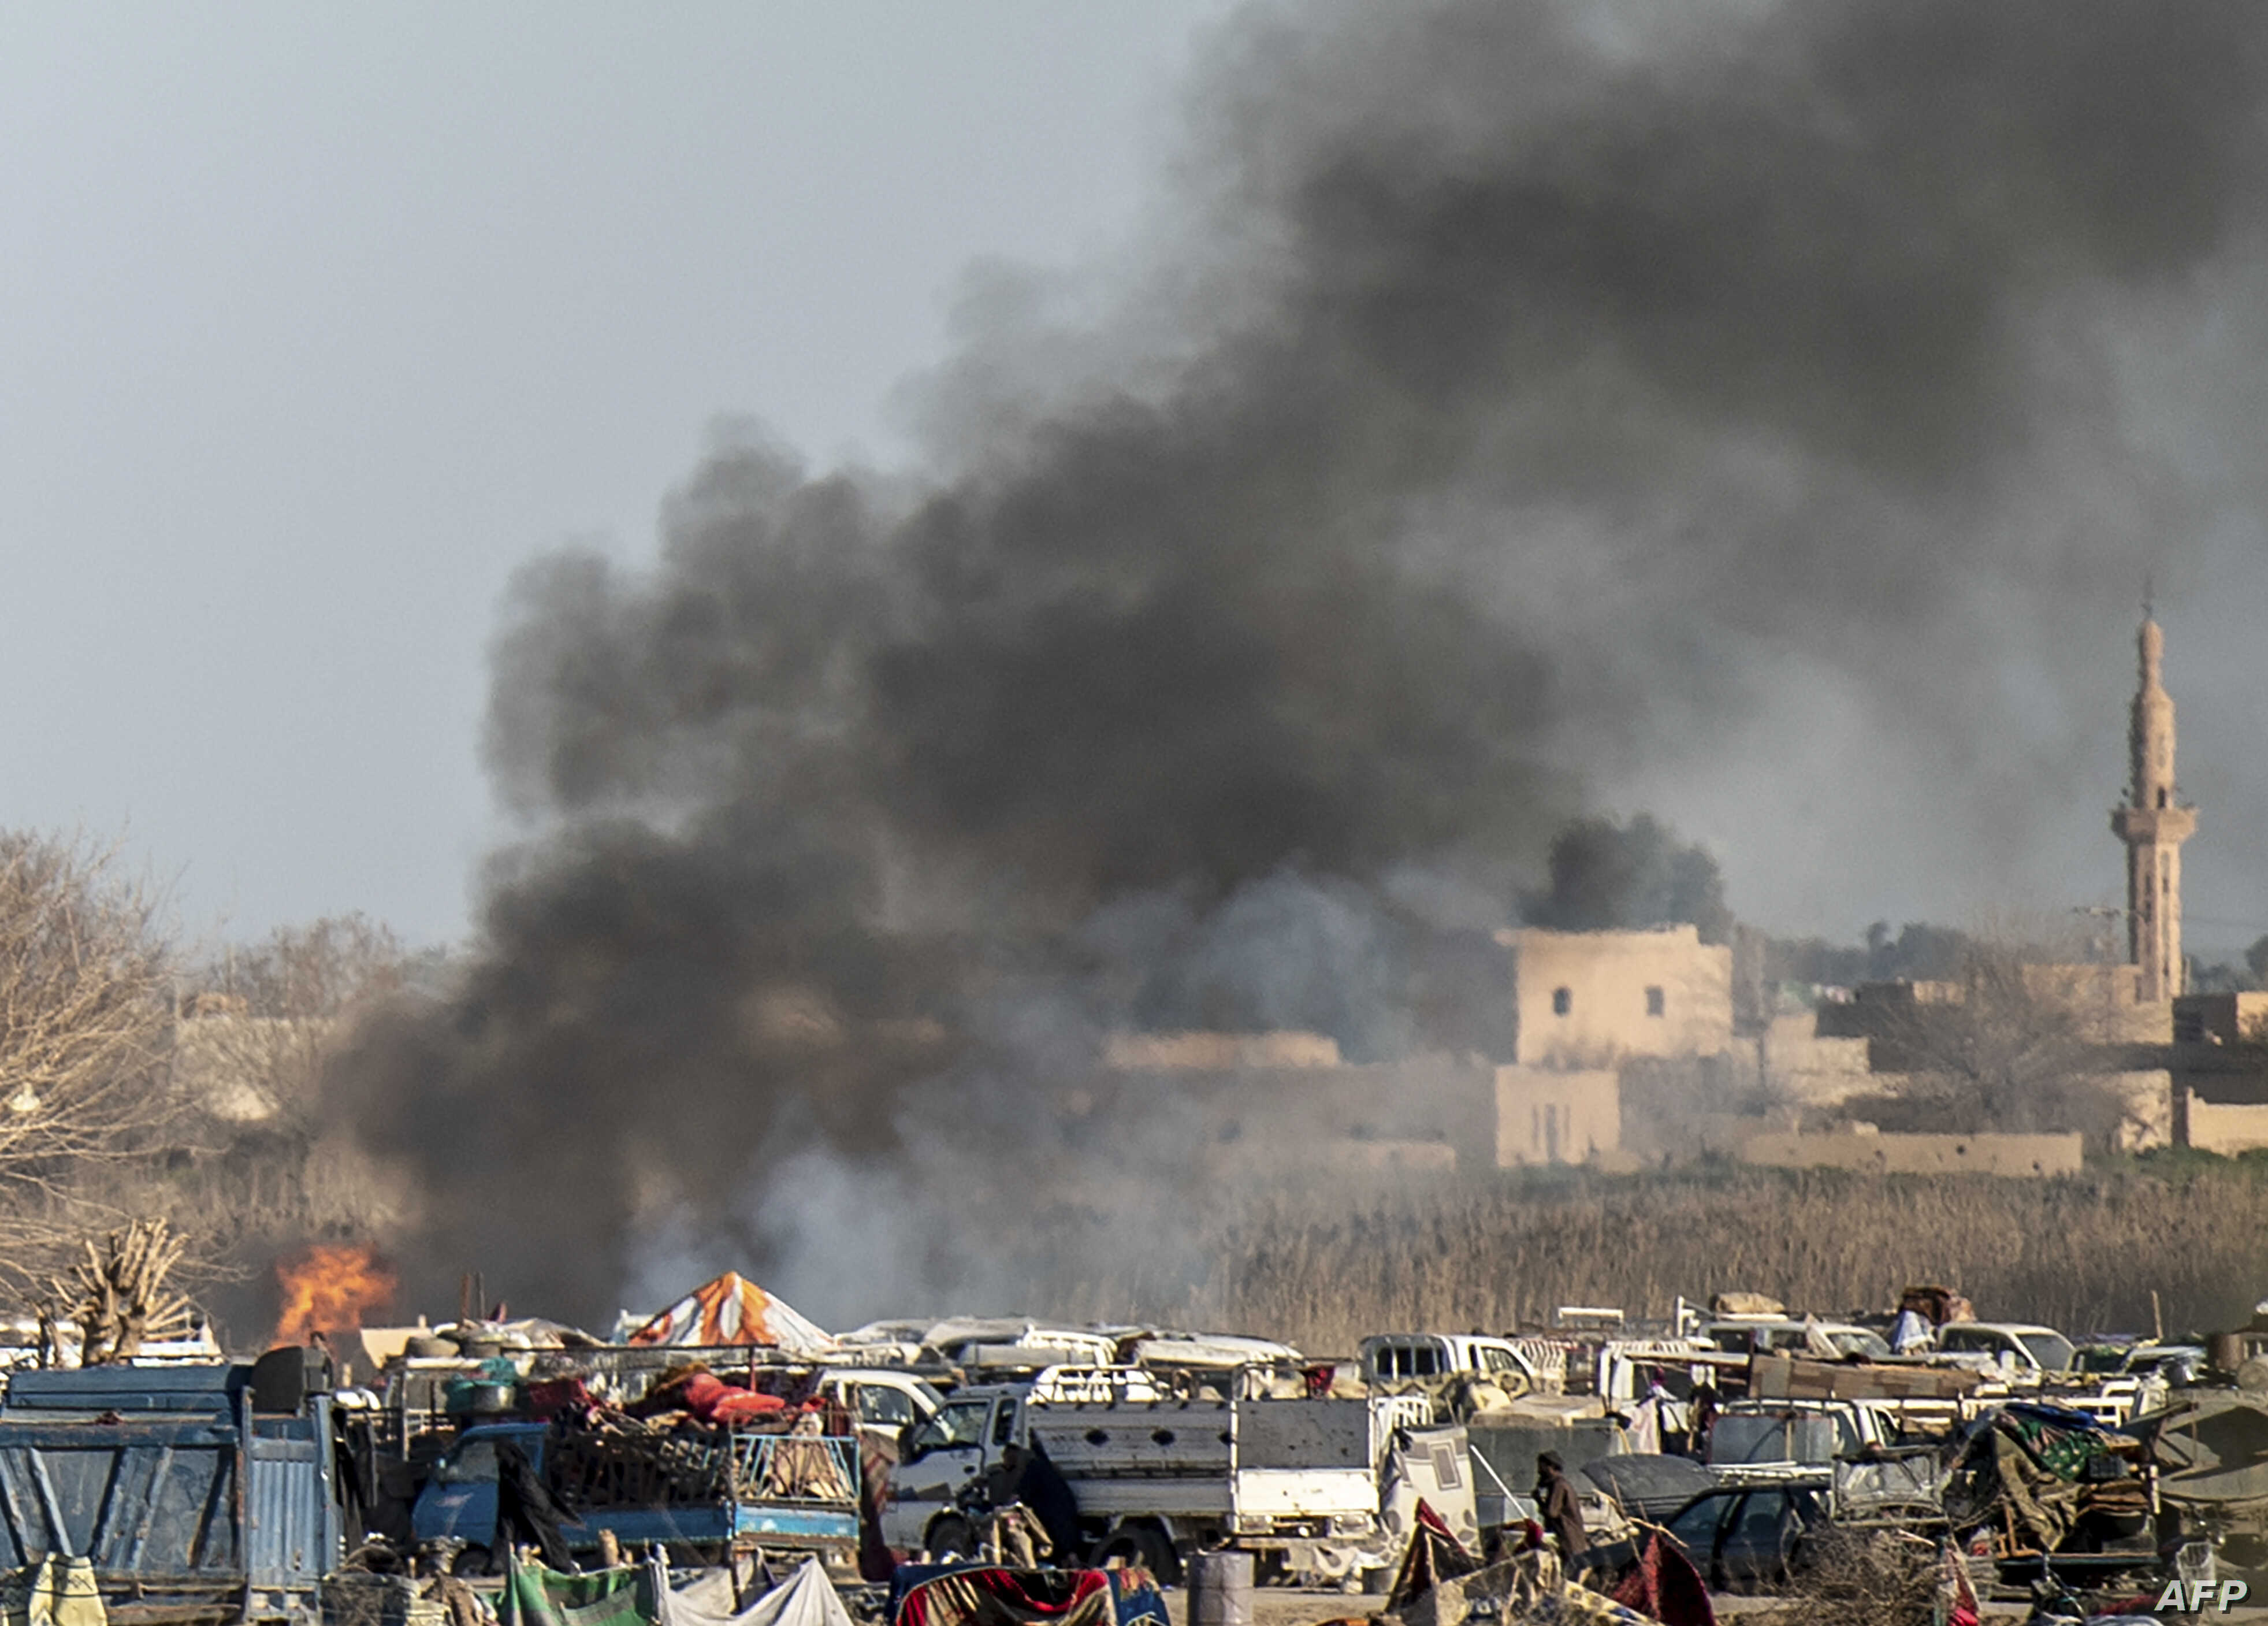 Smoke rises from a makeshift camp for Islamic State members and their families in the town of Baghuz, in the eastern Syrian province of Deir el-Zour, March 9, 2019.